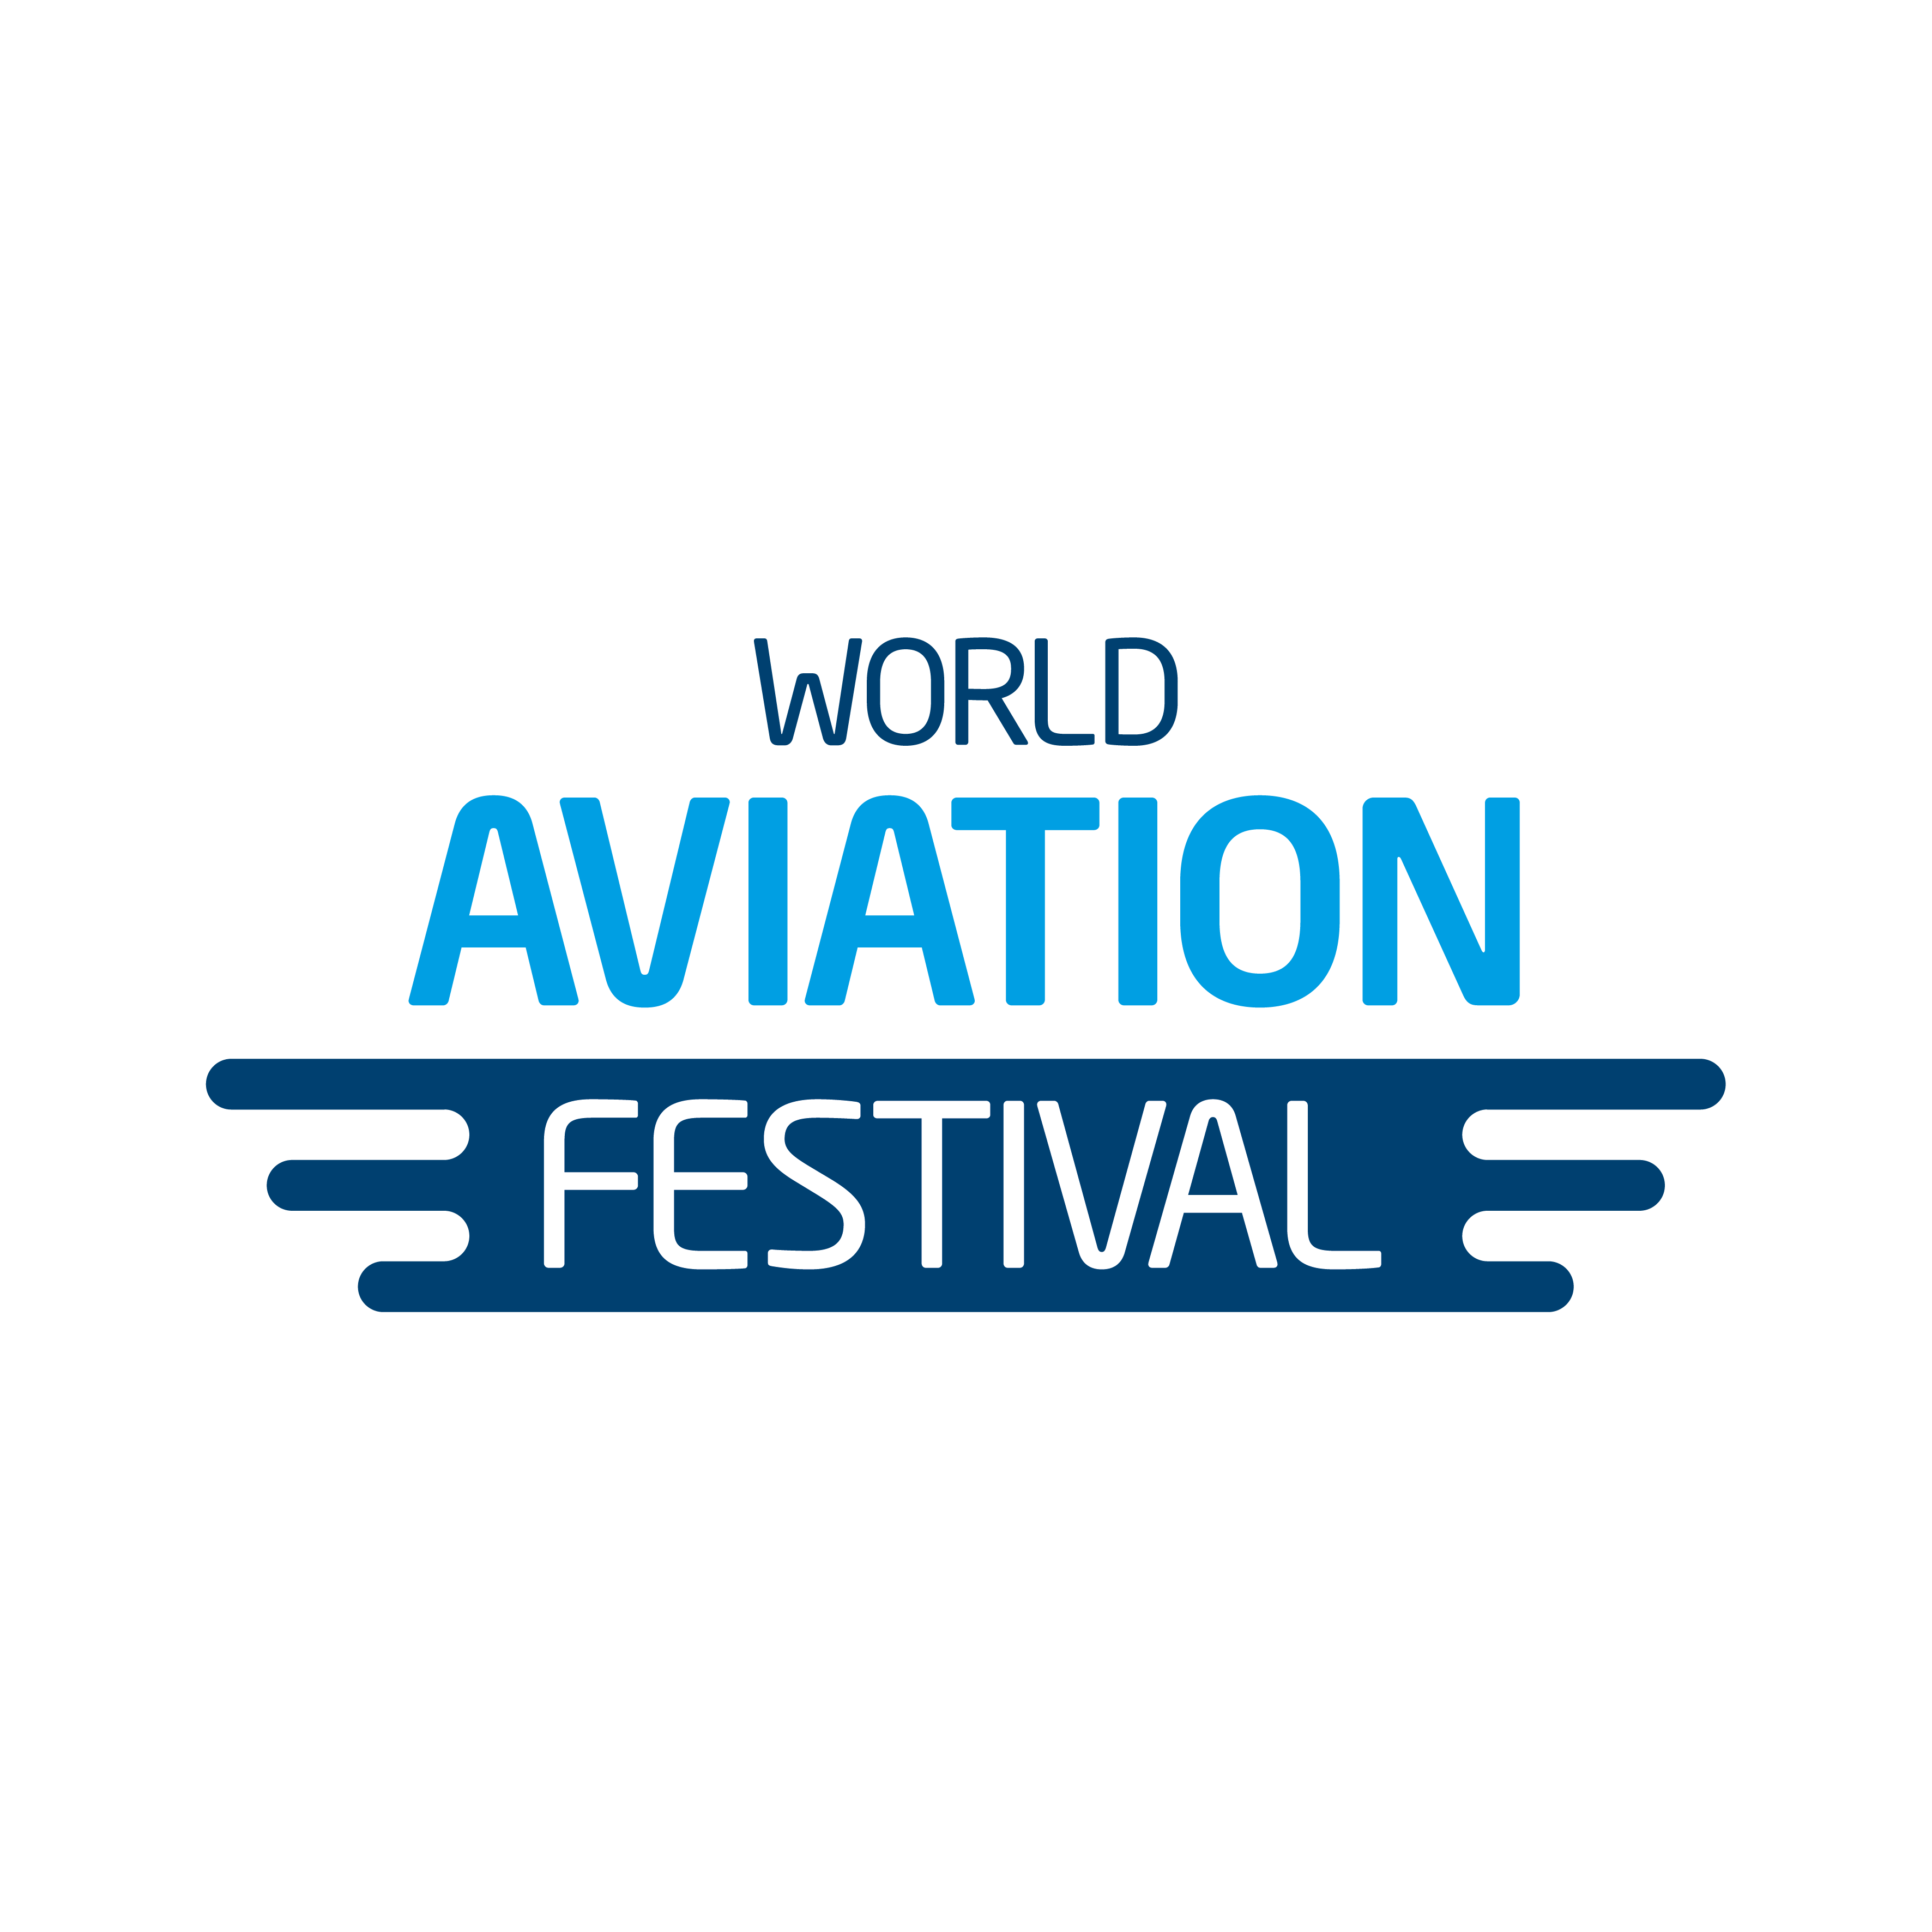 World Aviation Festival *Discount for BAG Members*